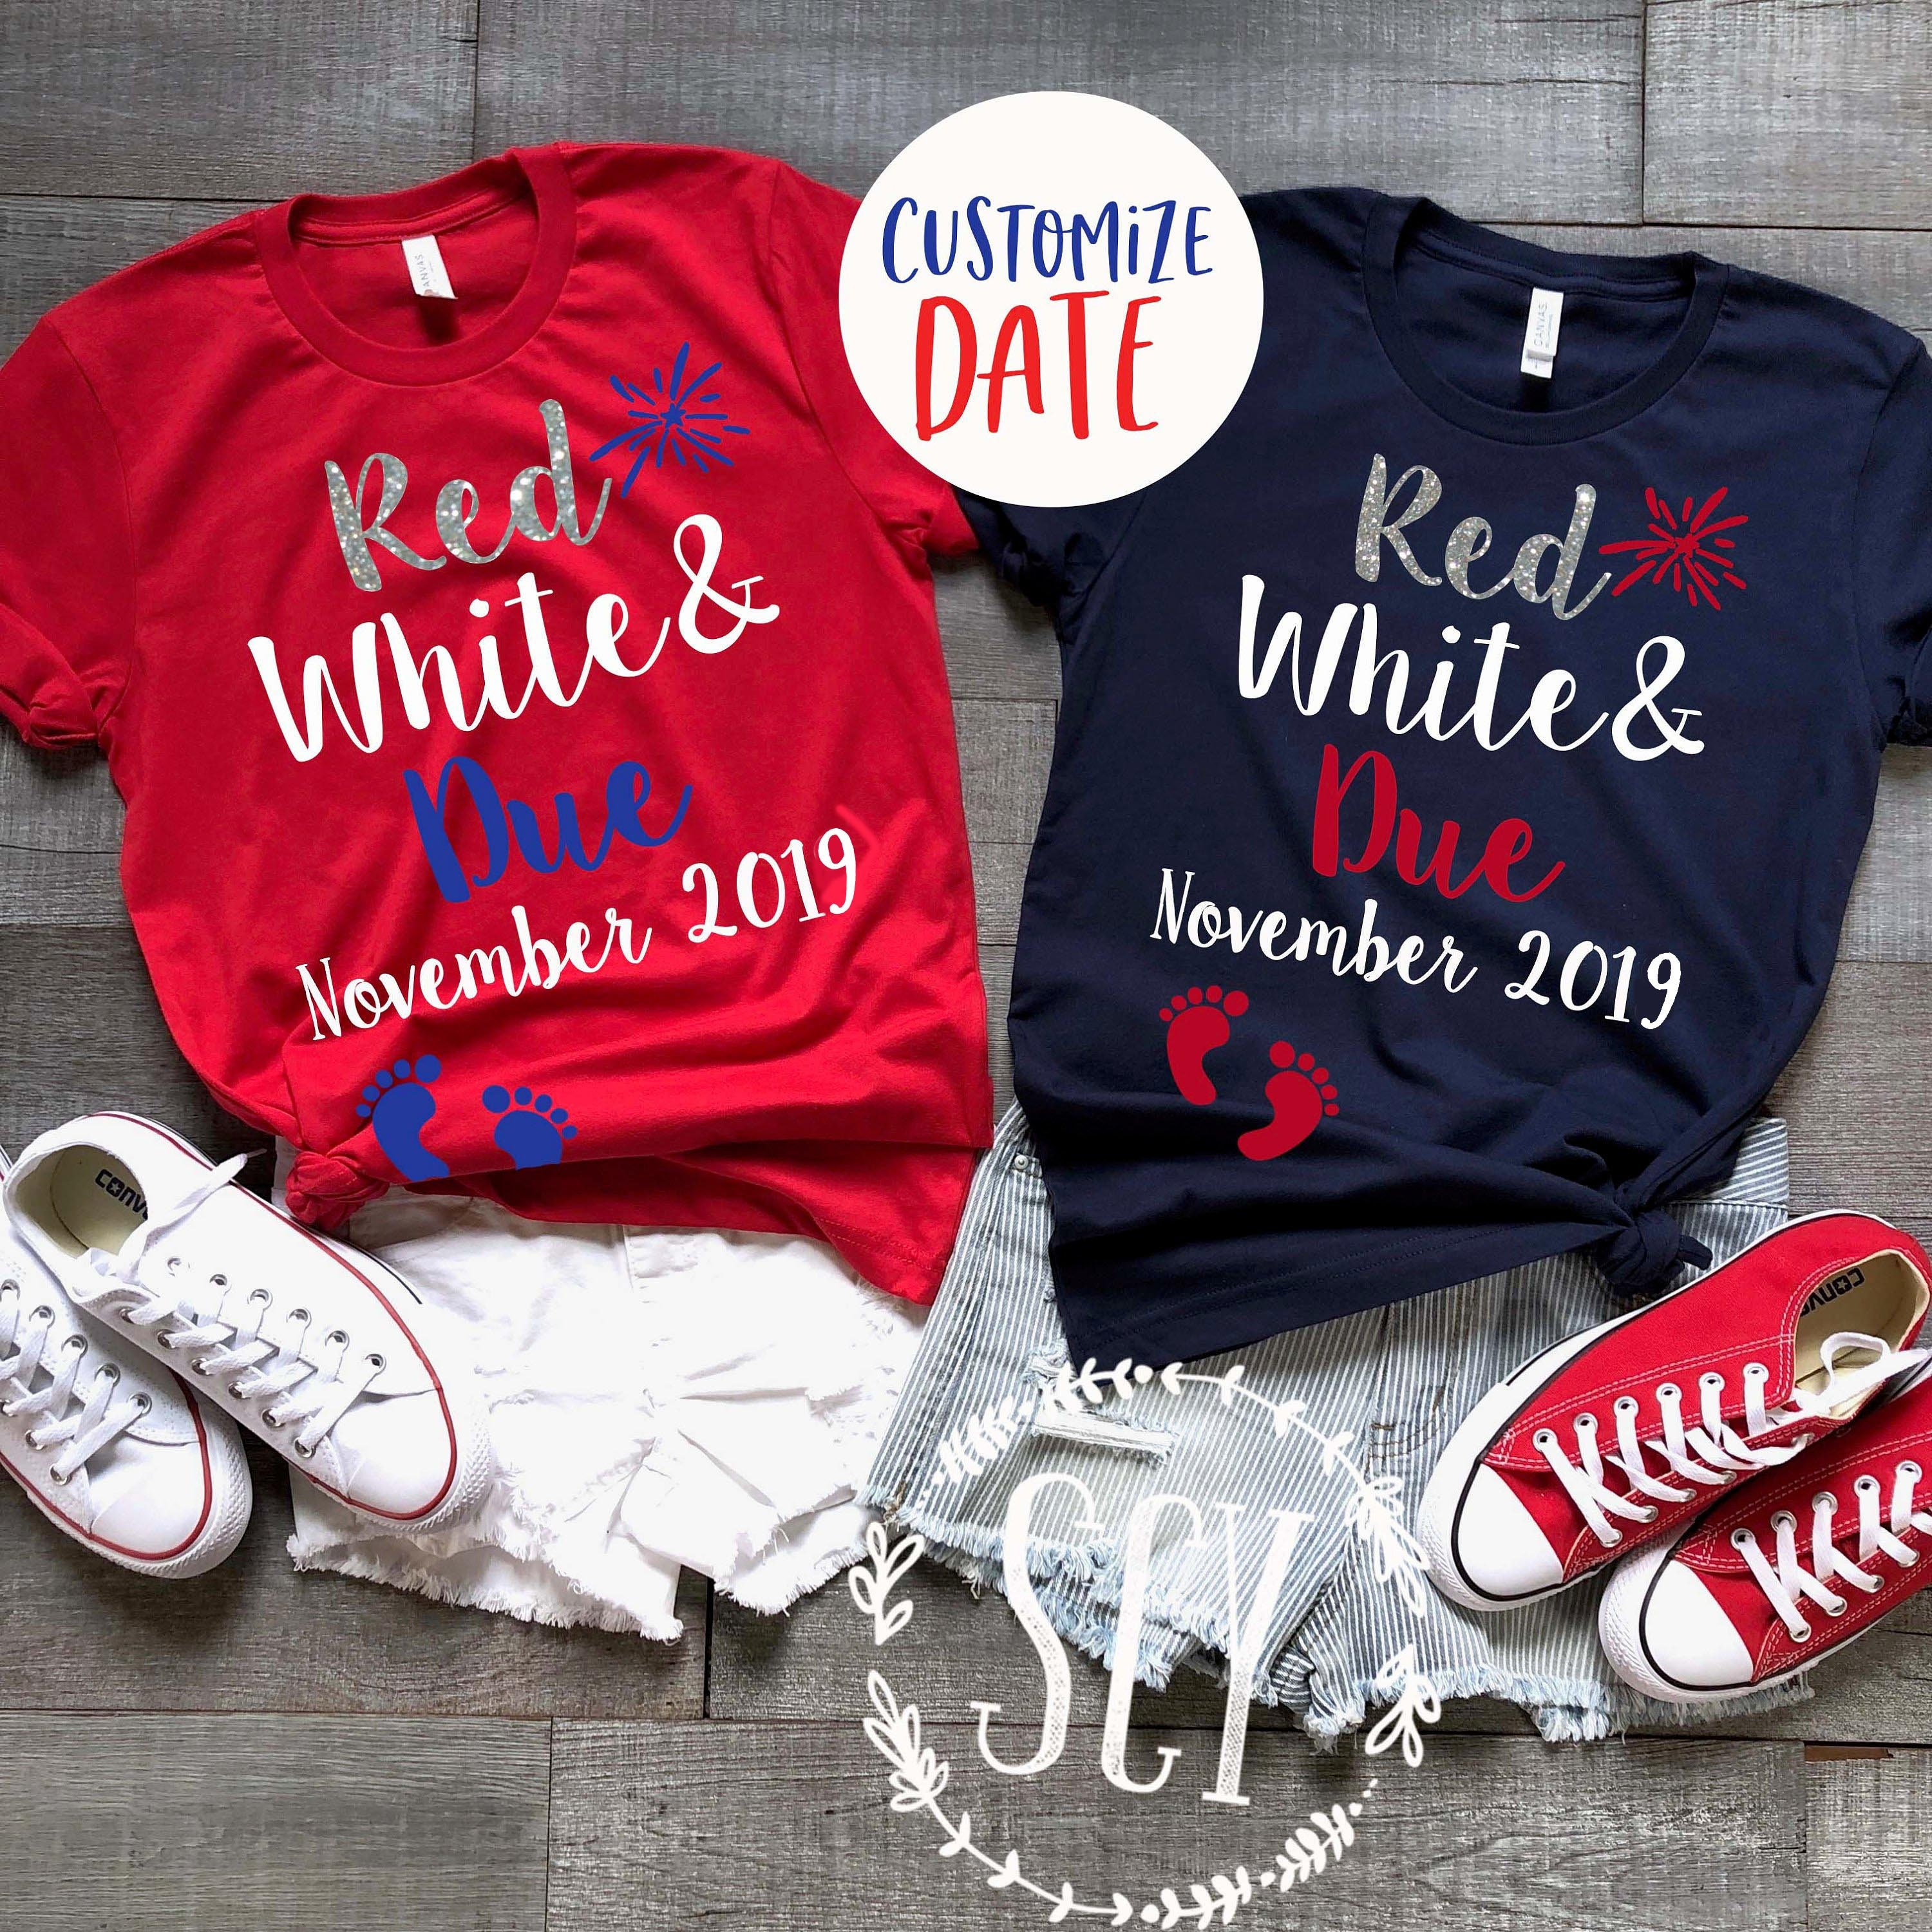 e71d964ce21e2 Red White & Due® Pregnancy Announcement Shirt Cute 4th of | Etsy